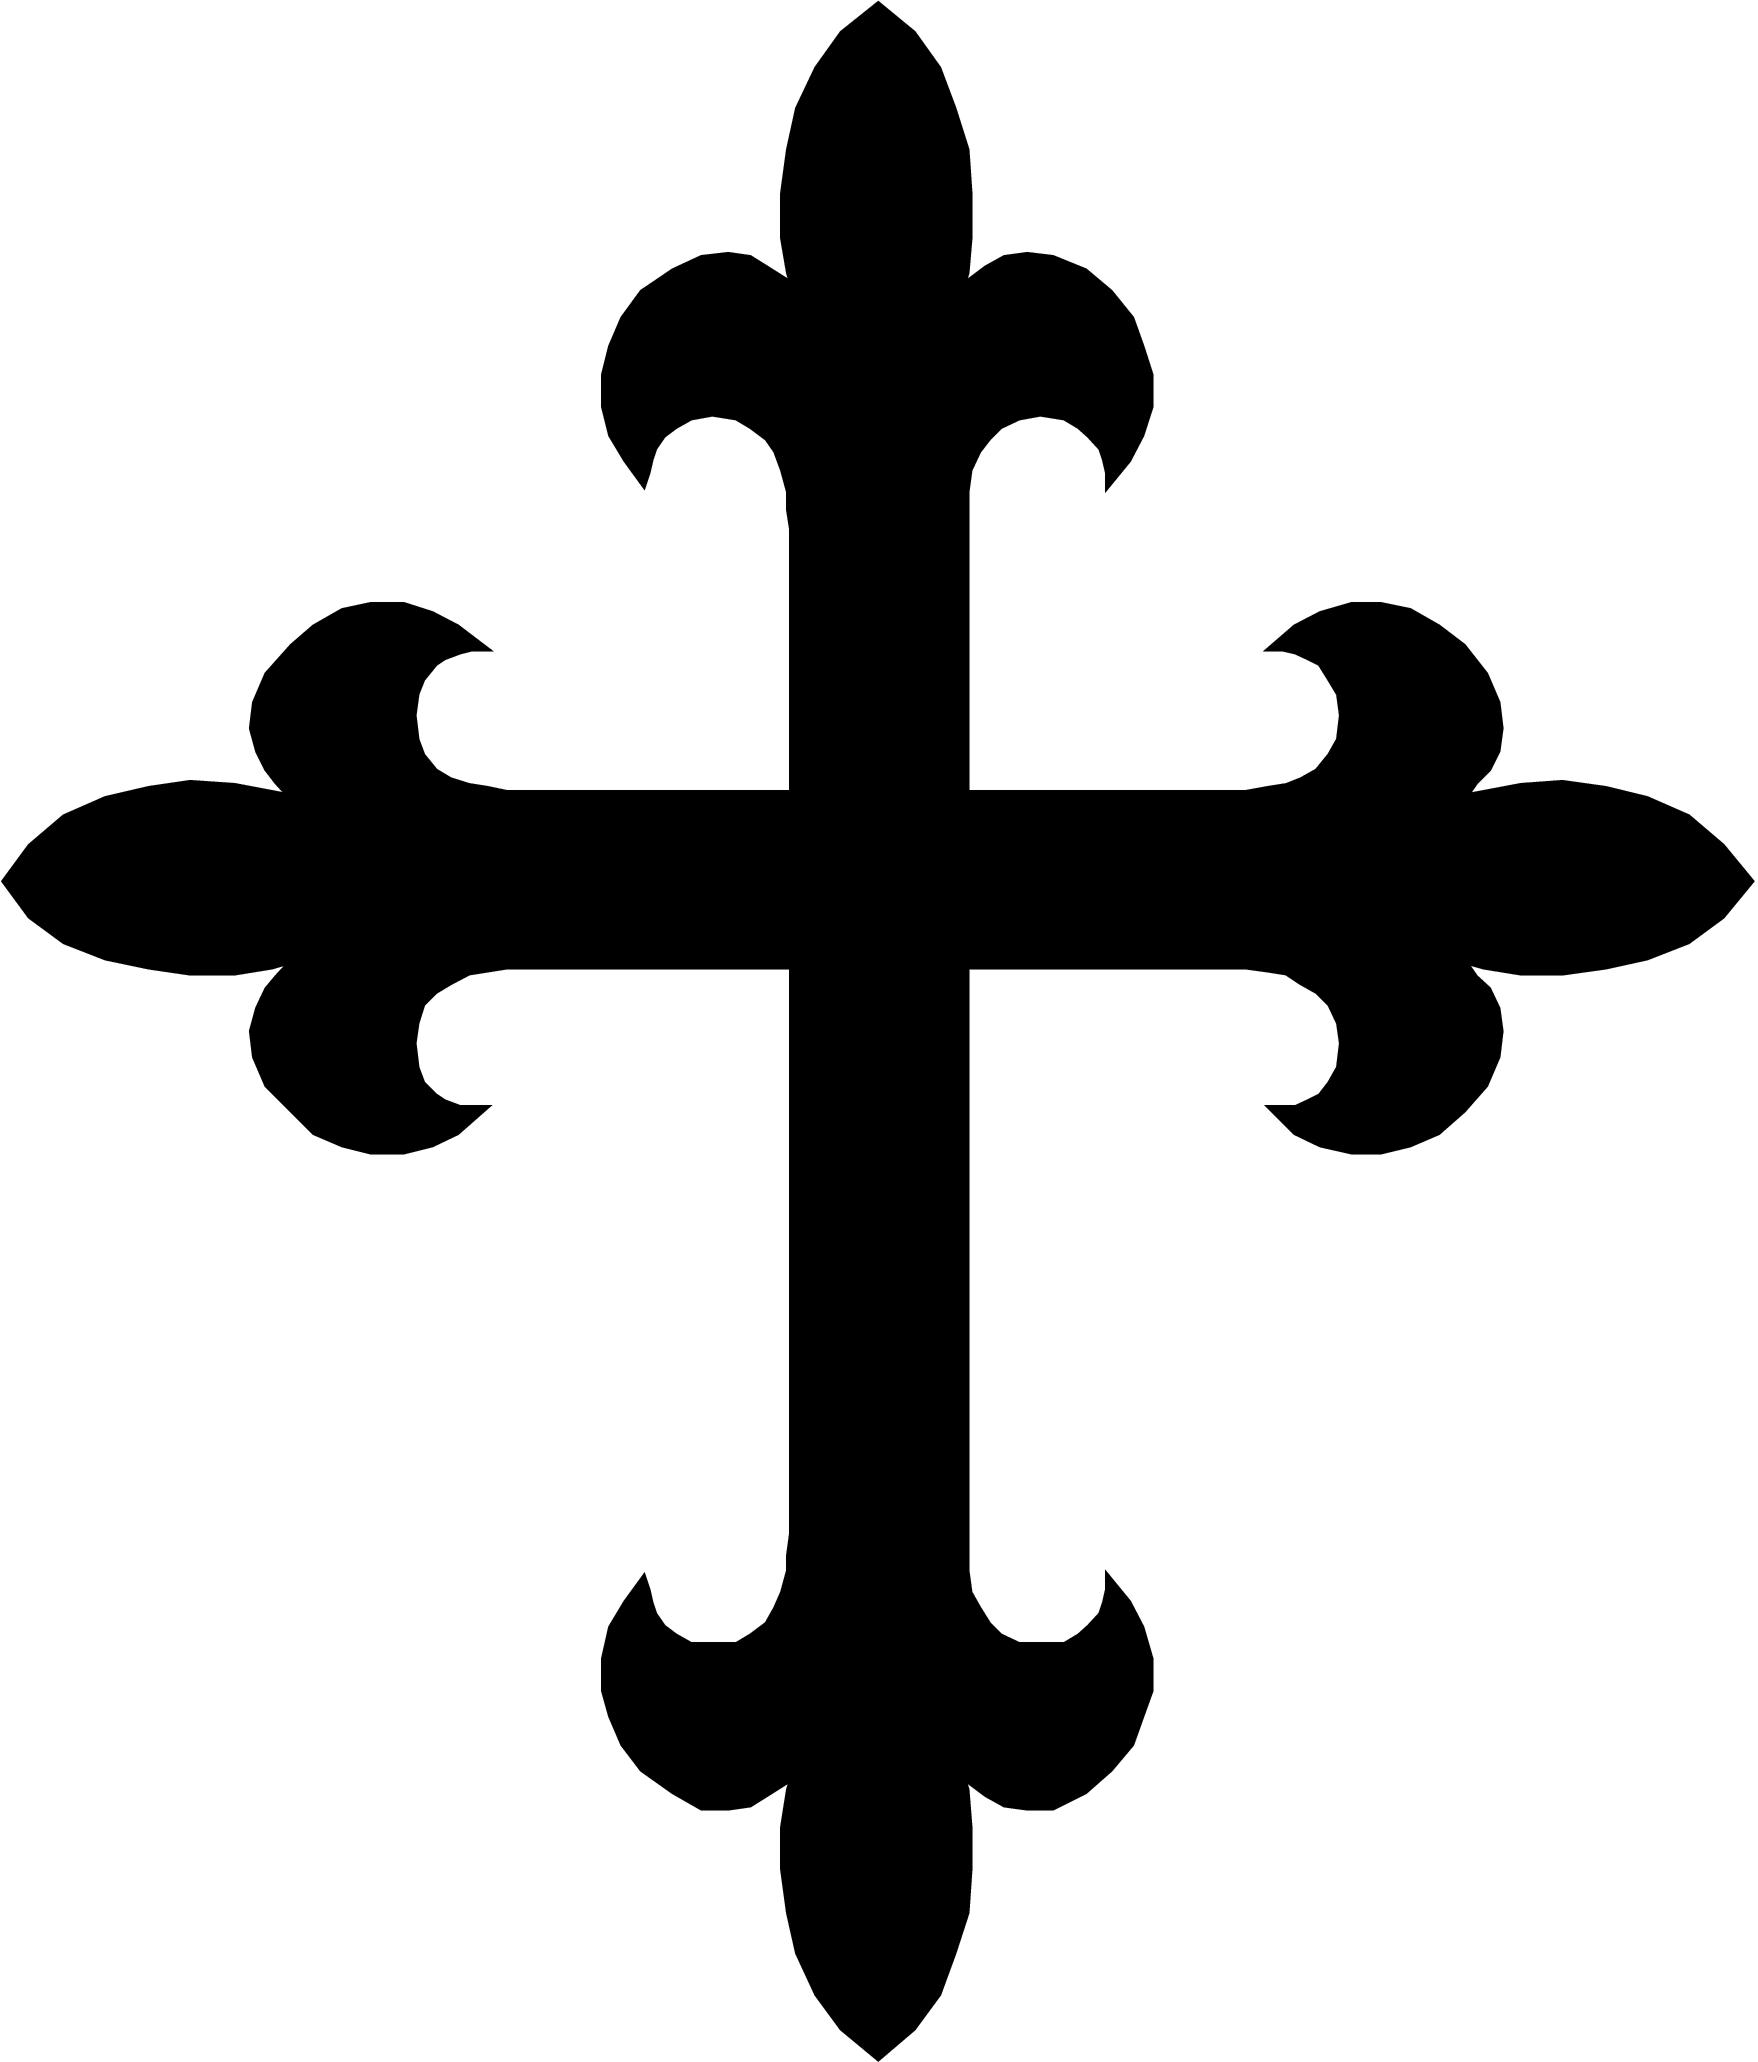 cross silhouette download holy cross silhouette vector free download cross cross silhouette